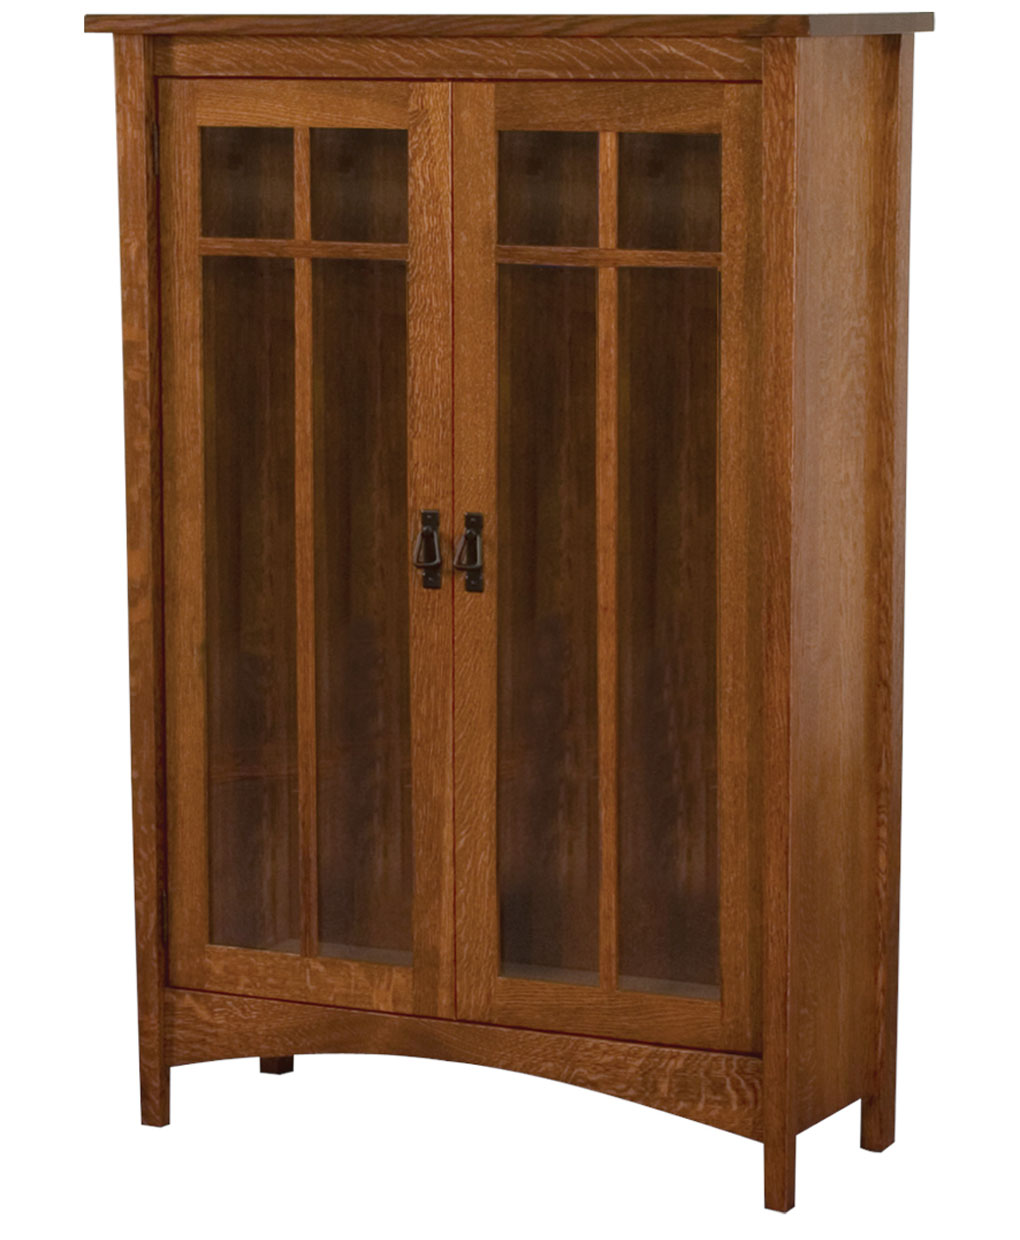 Arts and crafts 2 door bookcase amish direct furniture for Arts and crafts bookshelf